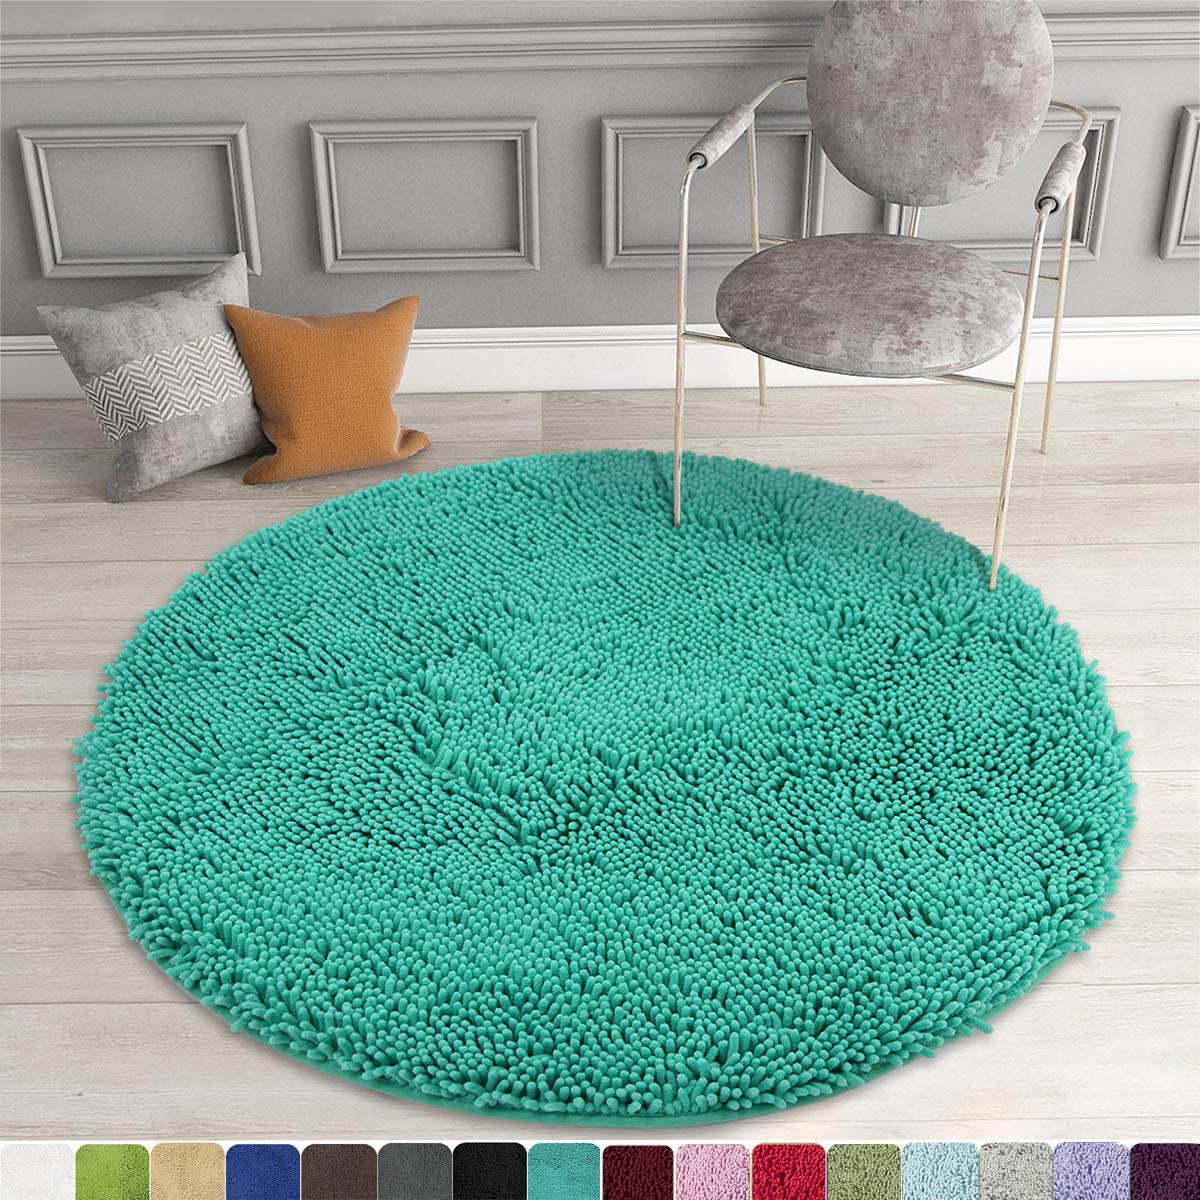 Picture of: Mayshine Round Bath Mat Non Slip Chenille 3 Feet Shaggy Bathroom Rugs Extra Soft And Absorbent Perfect Plush Carpet For Living Room Bedroom Machine Wash Dry Turquoise